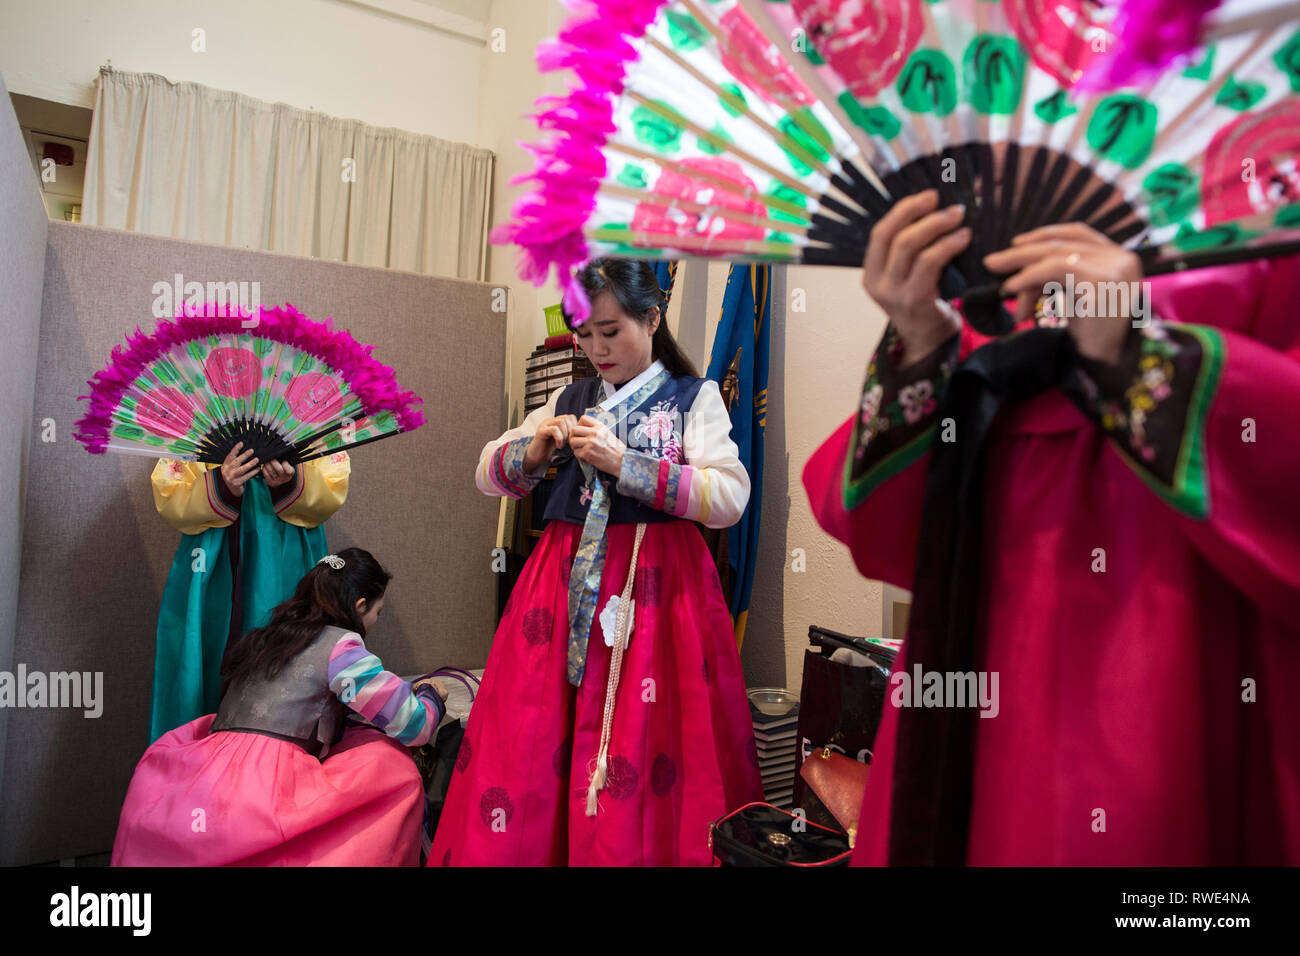 North and South Korean Ladies perform the Buchaechum also called a Fan Dance on the day Korea Commemorates 100th Anniversary of March 1st Independence. - Stock Image